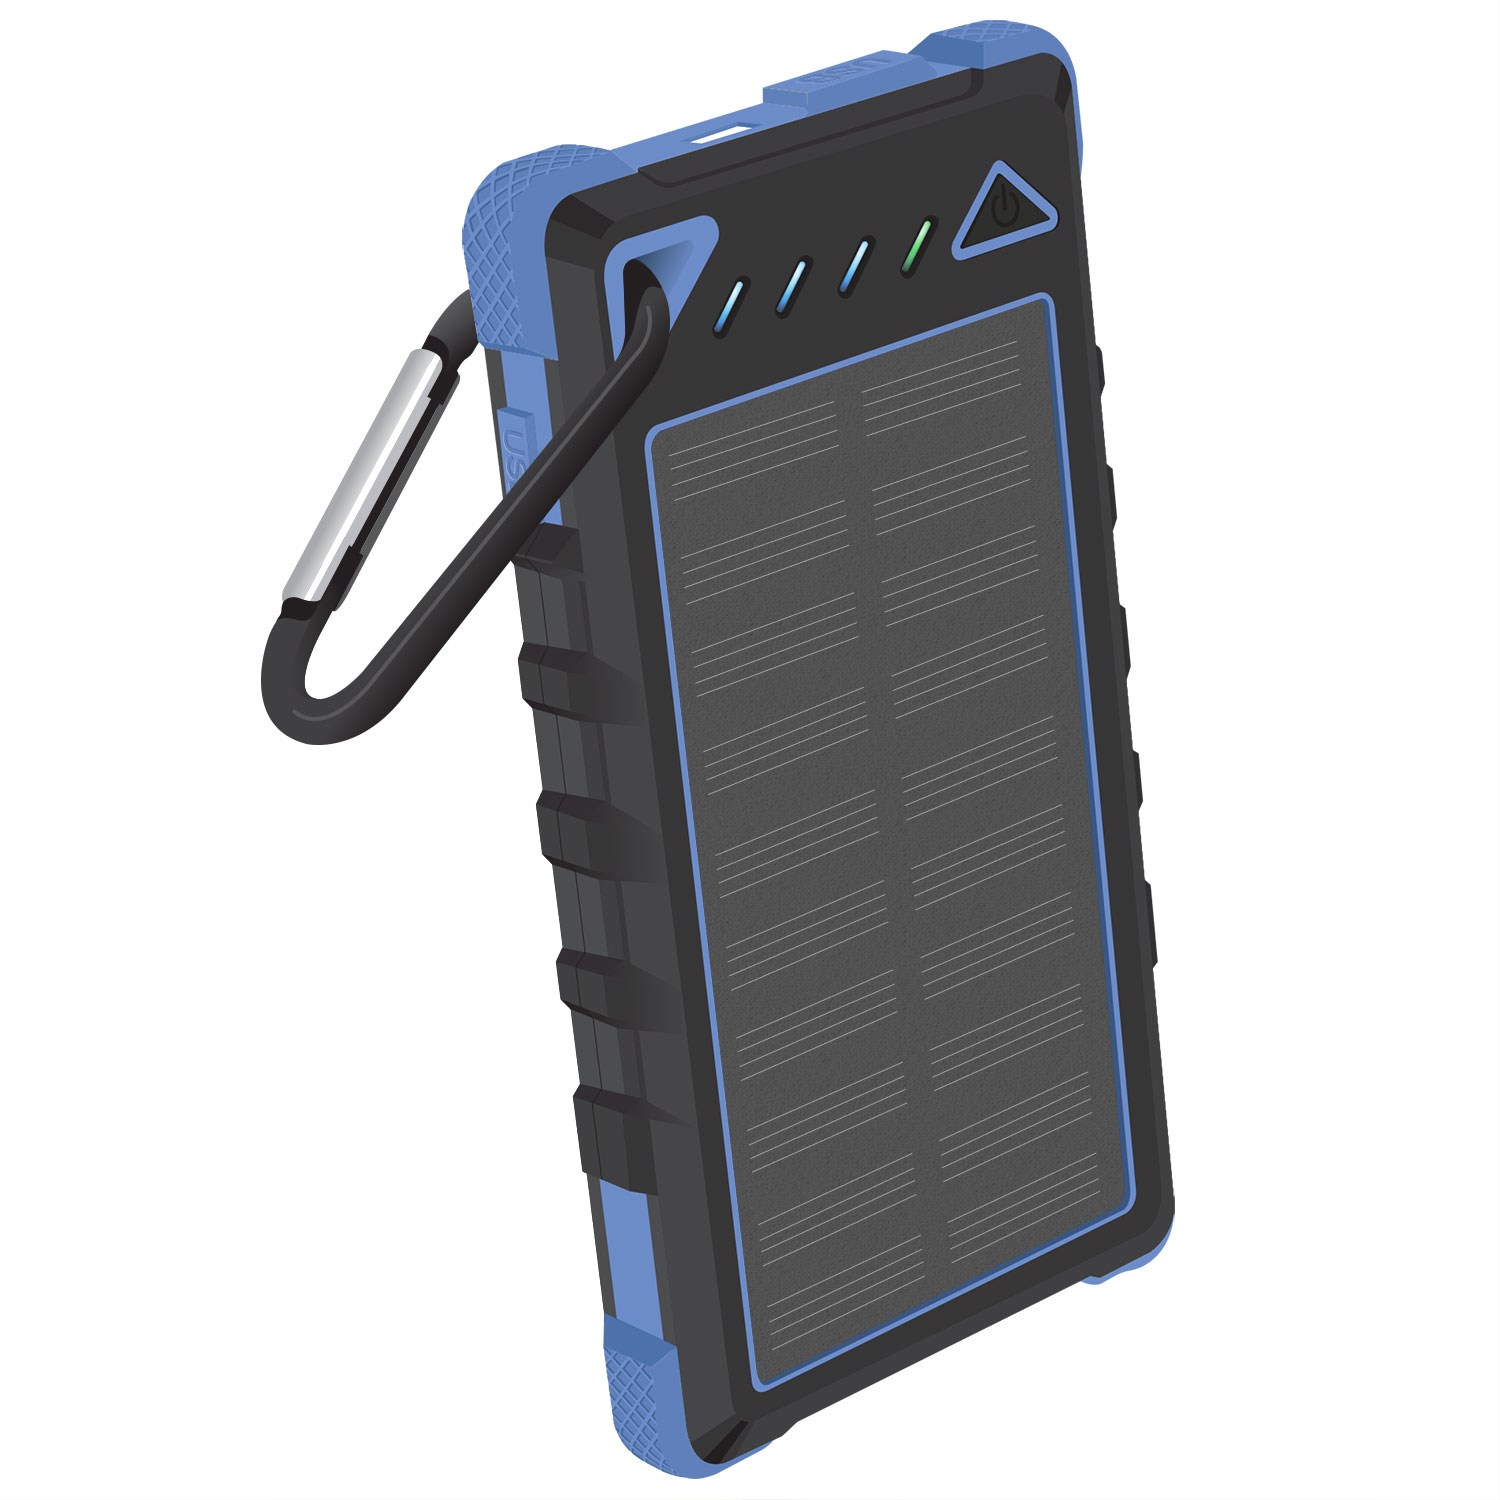 Huawei Honor 6 Plus Solar Powered Portable PowerBank Blue